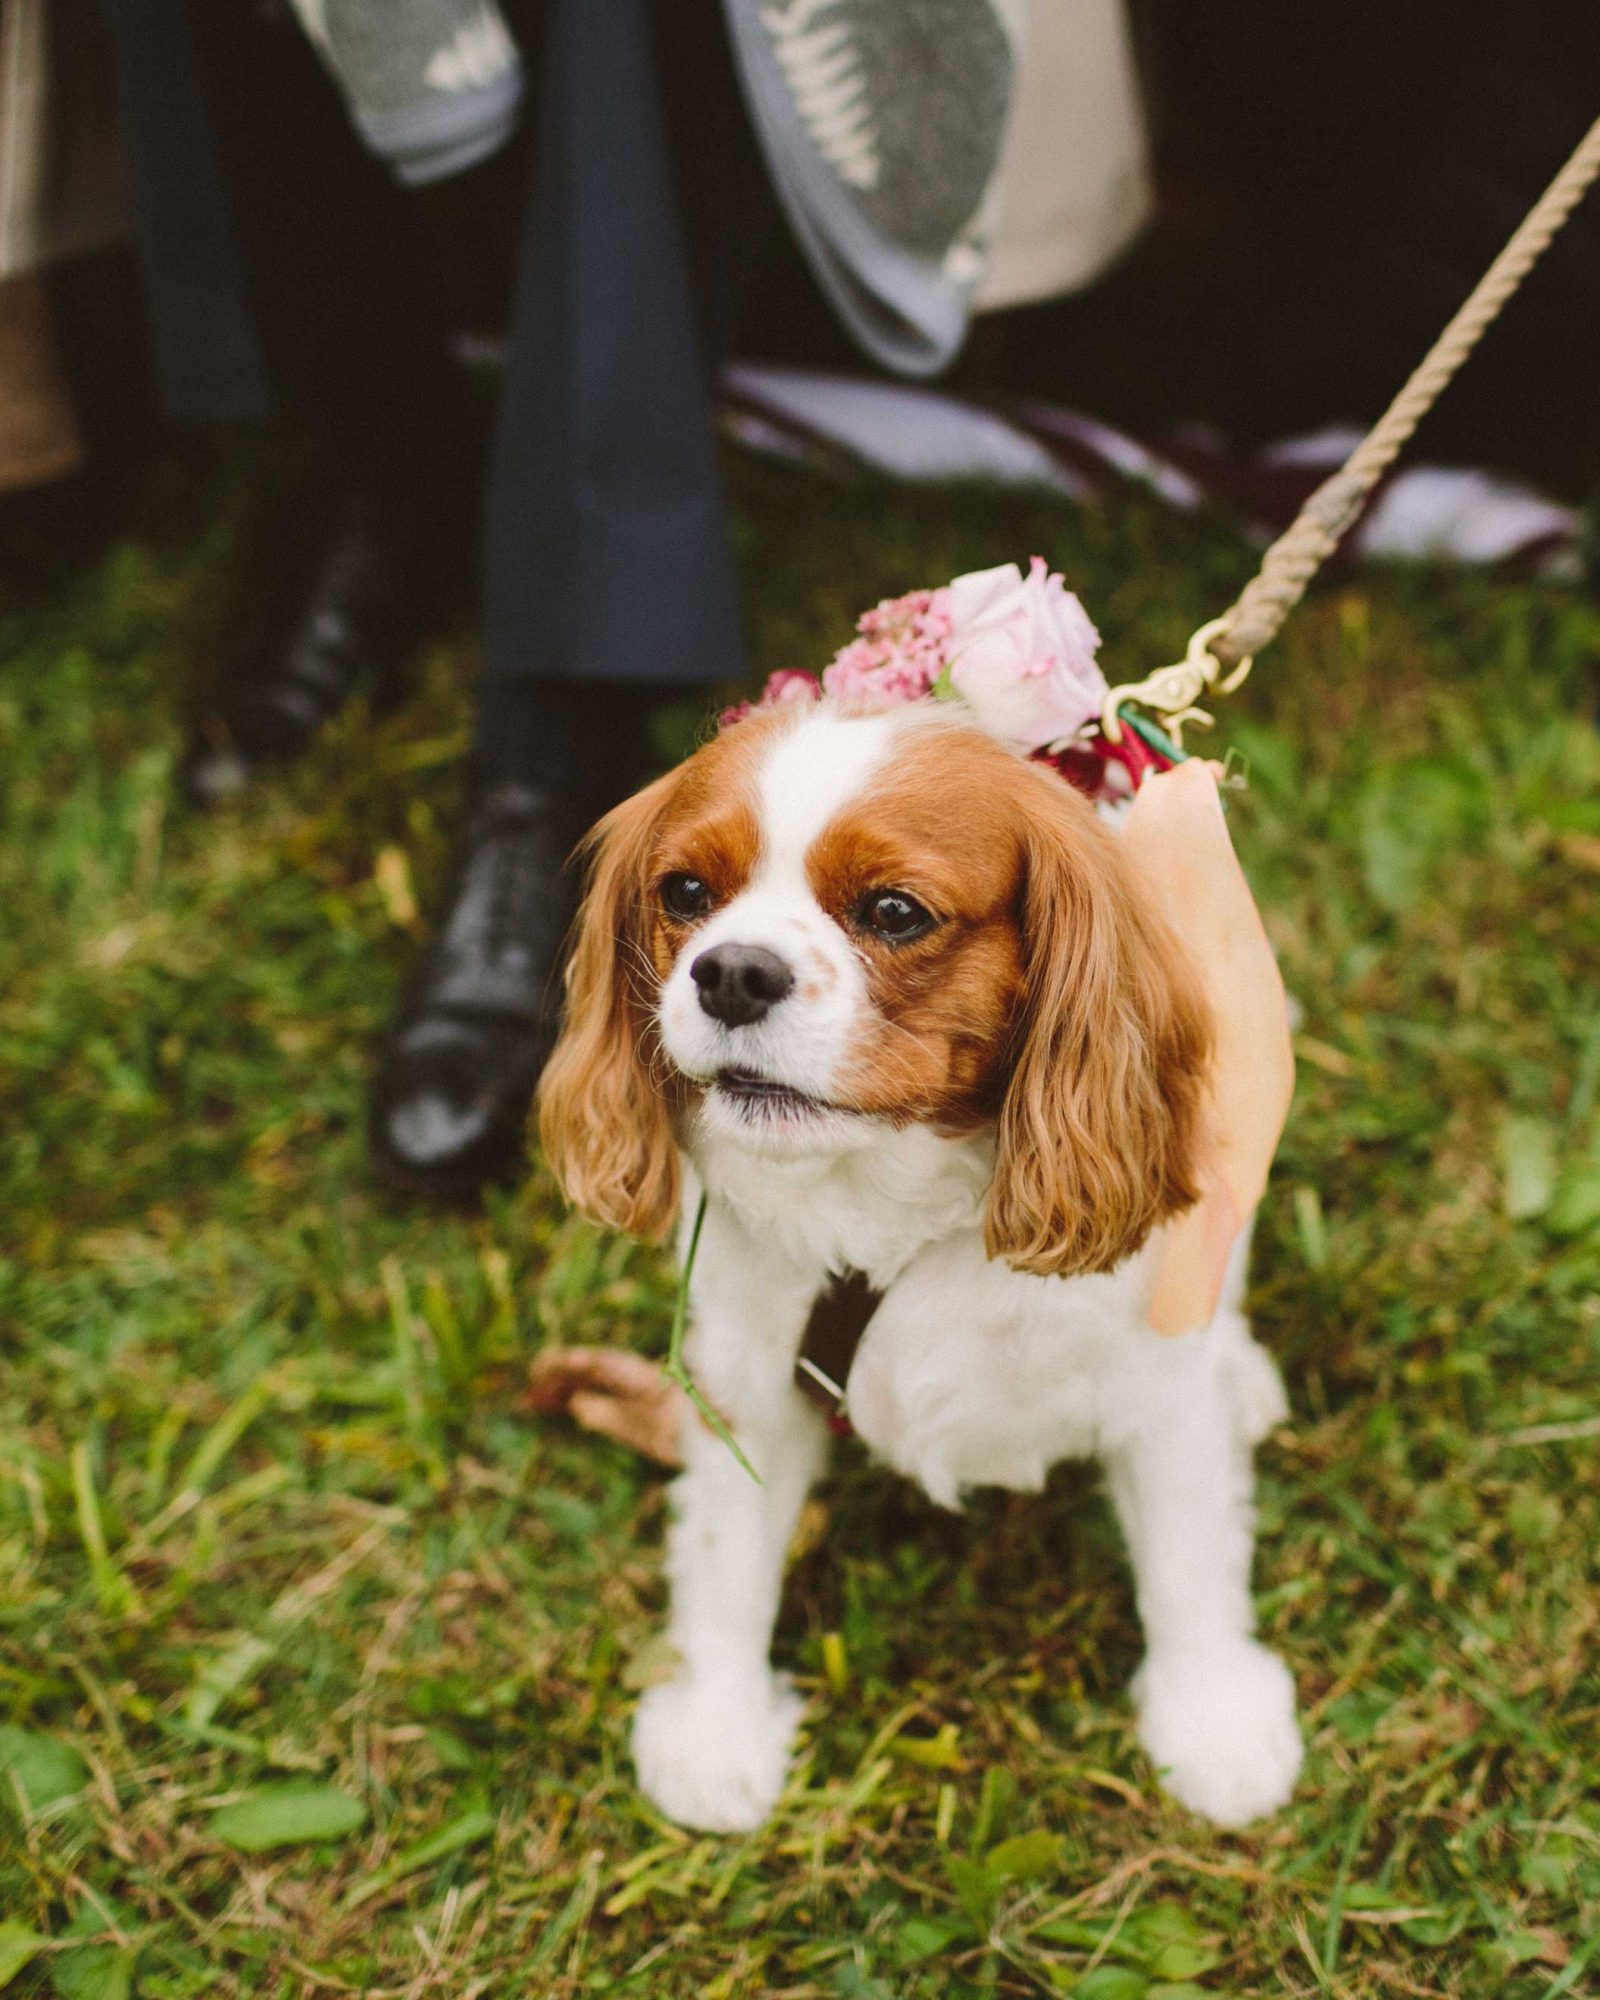 alisa-barrett-wedding-dog-558-s113048-0716.jpg